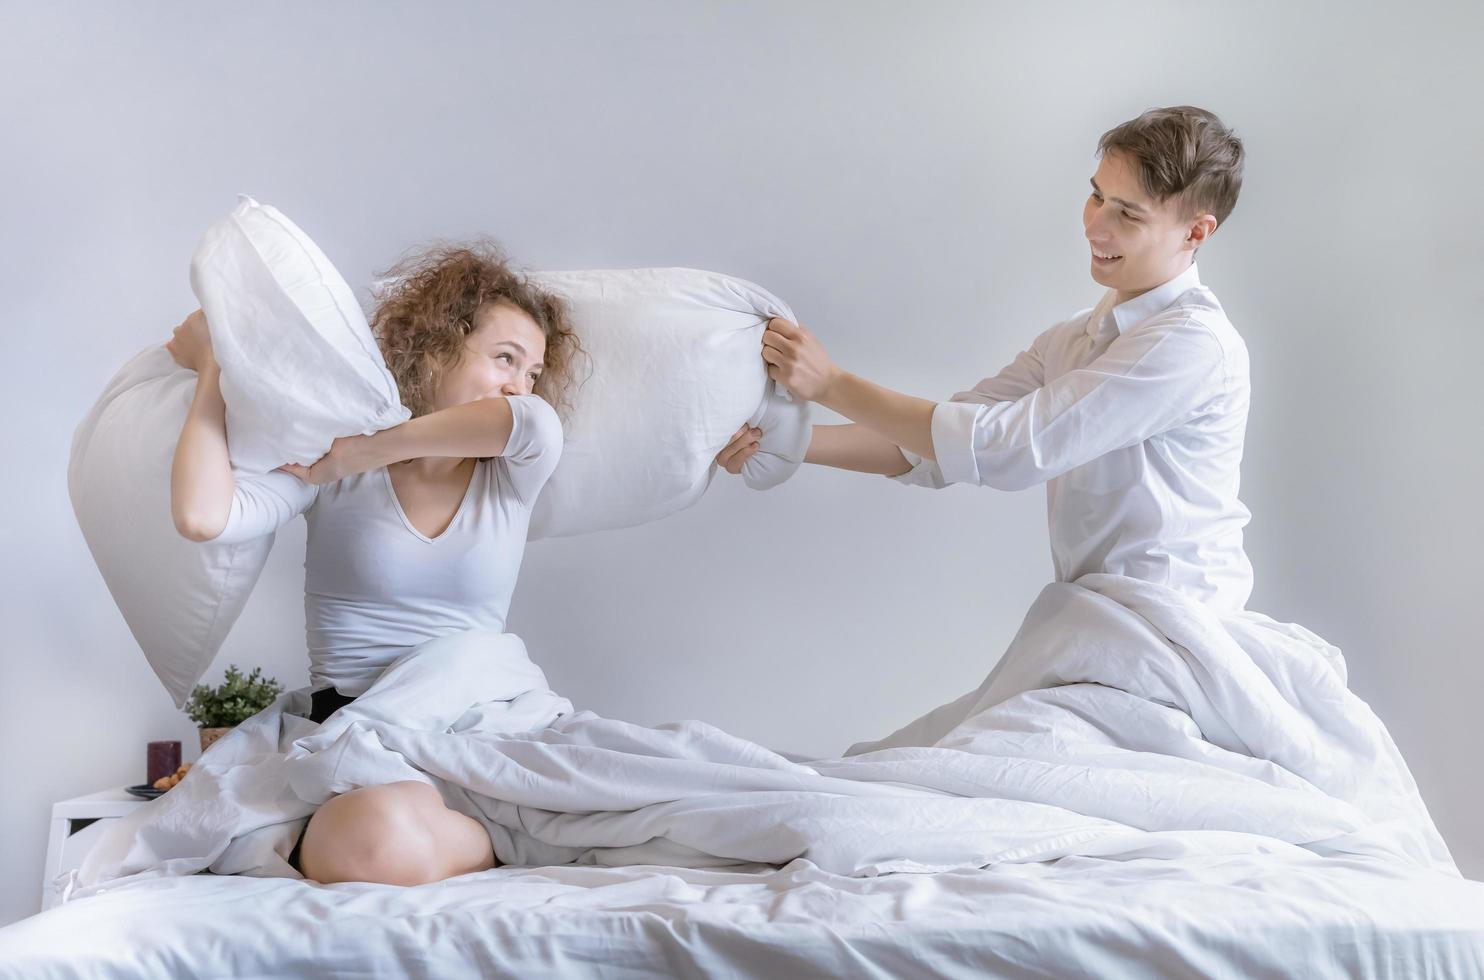 Couple has a pillow fight on the bed photo